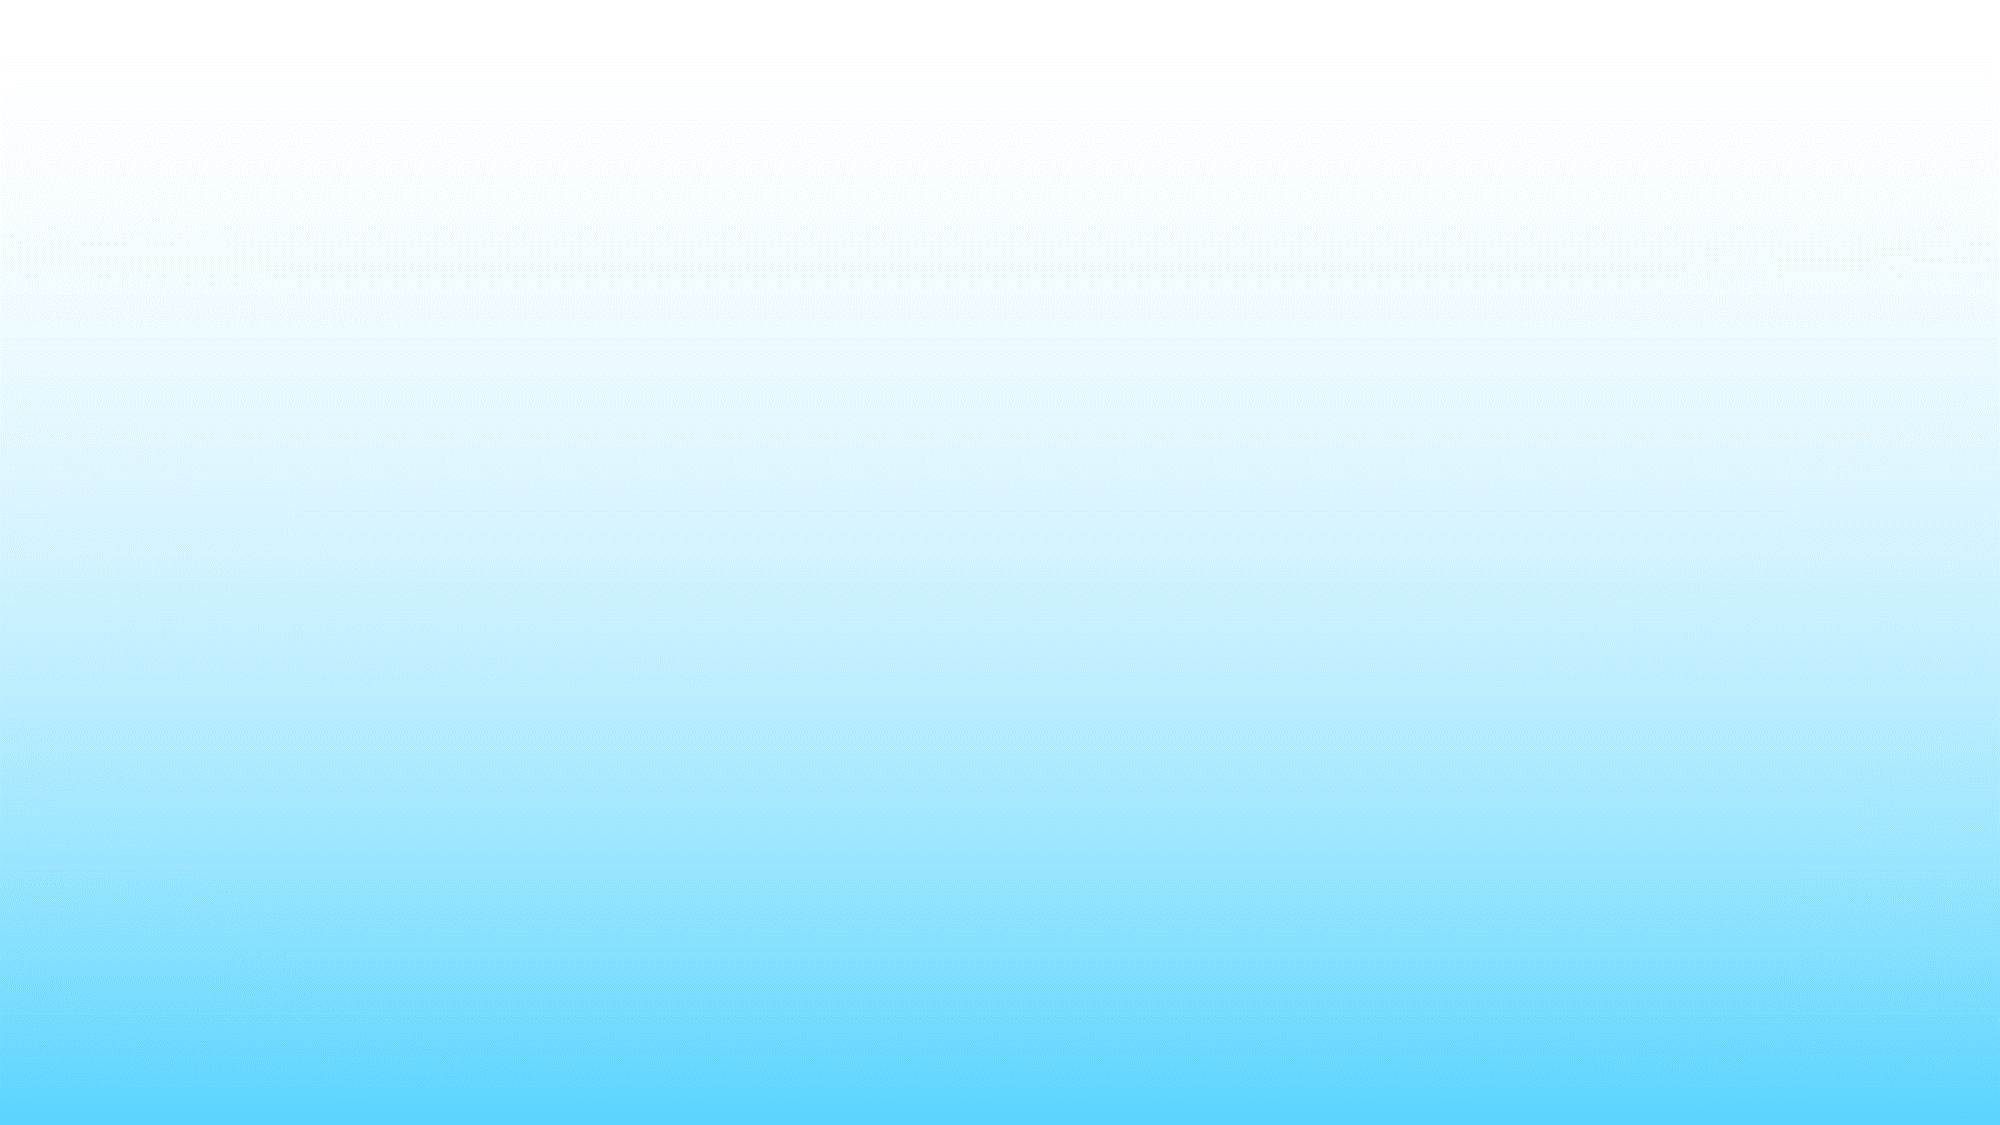 blue gradient bottom up.png